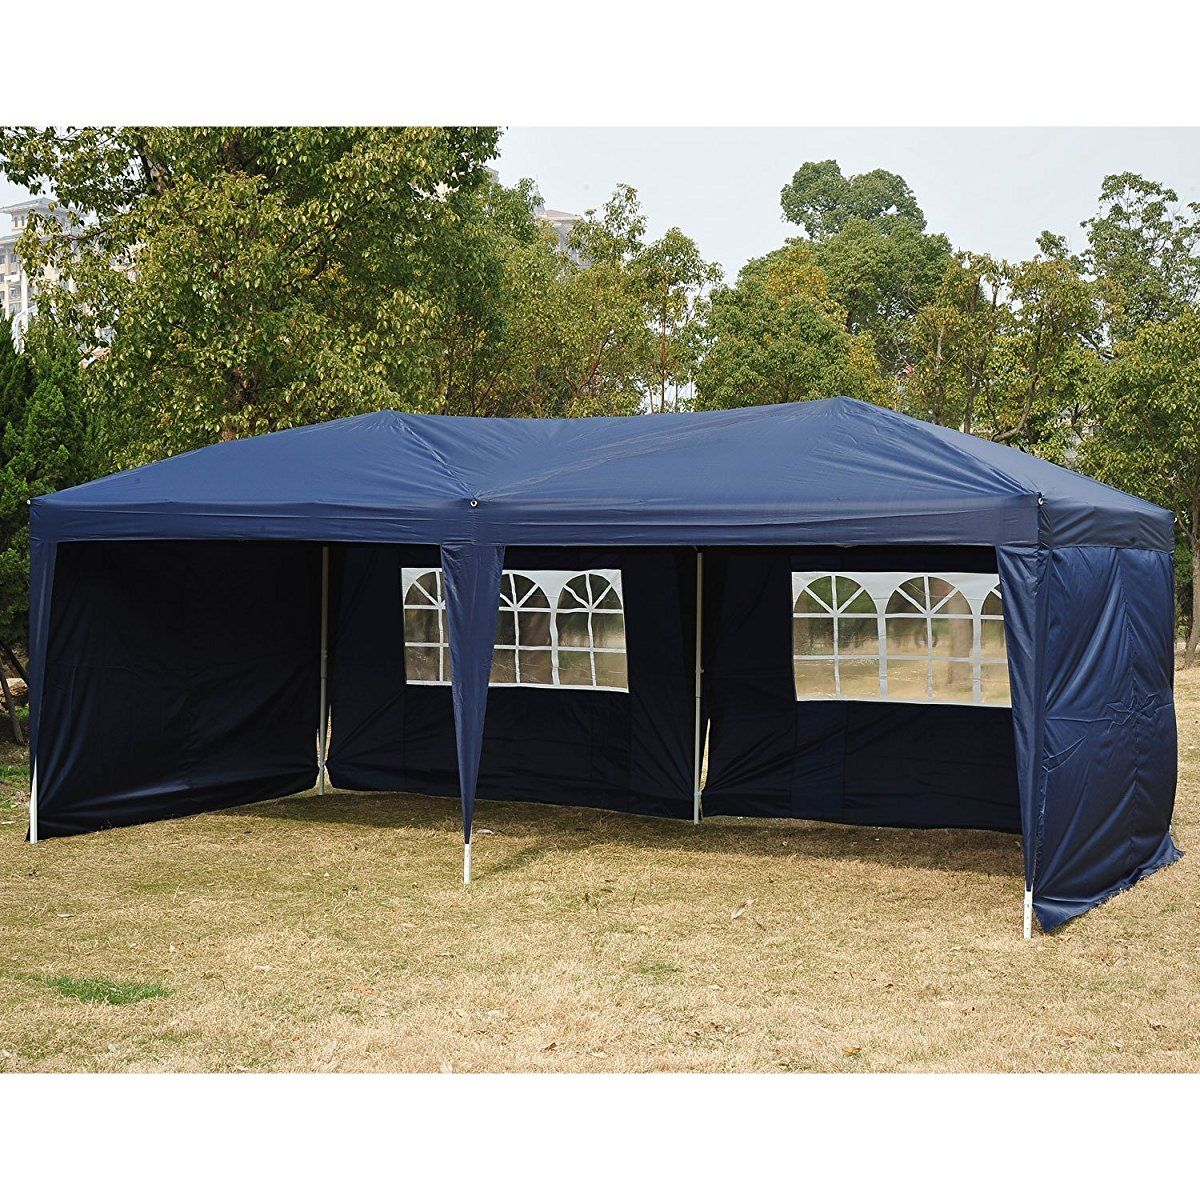 Outsunny 10 X 20 Easy Pop Up Canopy Party Tent Navy Blue W 4 Removable Sidewalls Pop Up Tent Canopy Tent Pop Up Canopy Tent